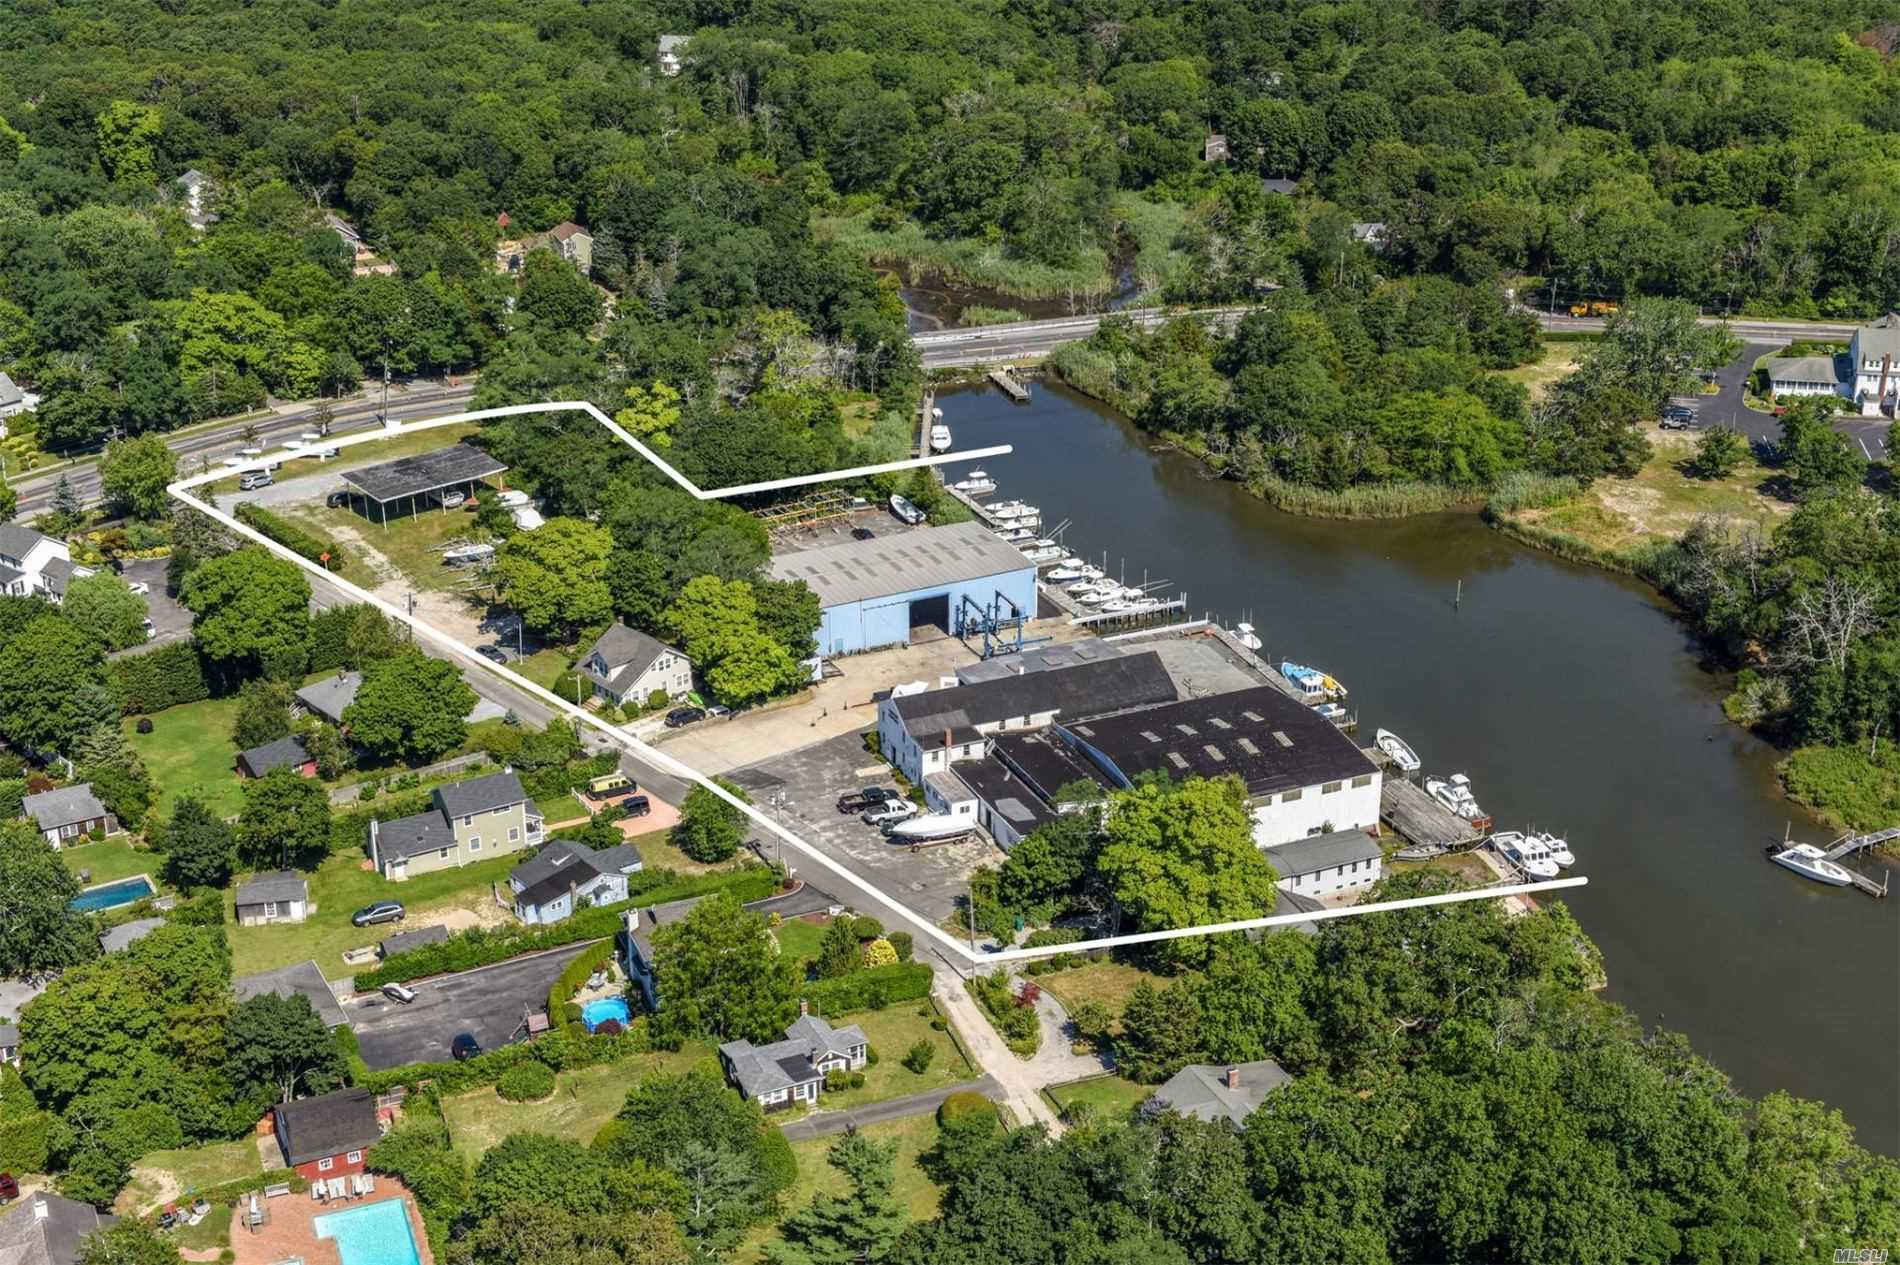 Land for sale in , E. Quogue, NY ,11942